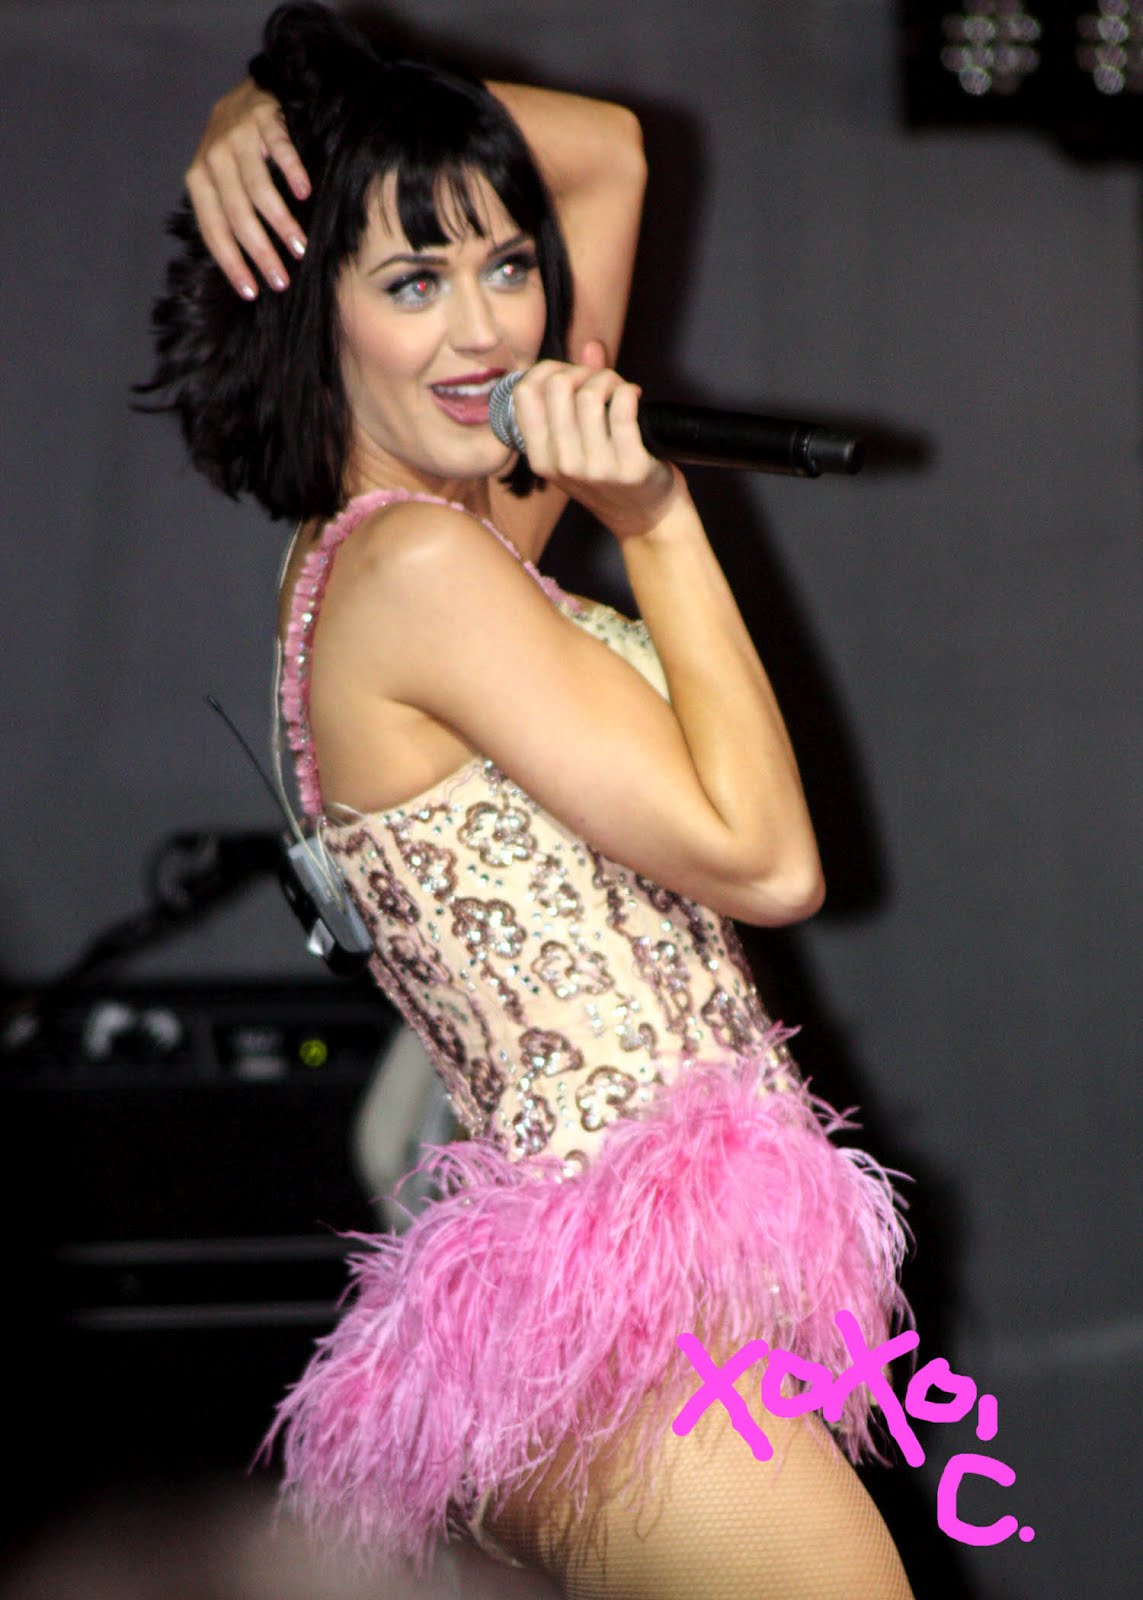 Katy perry fakes mobile pic 53